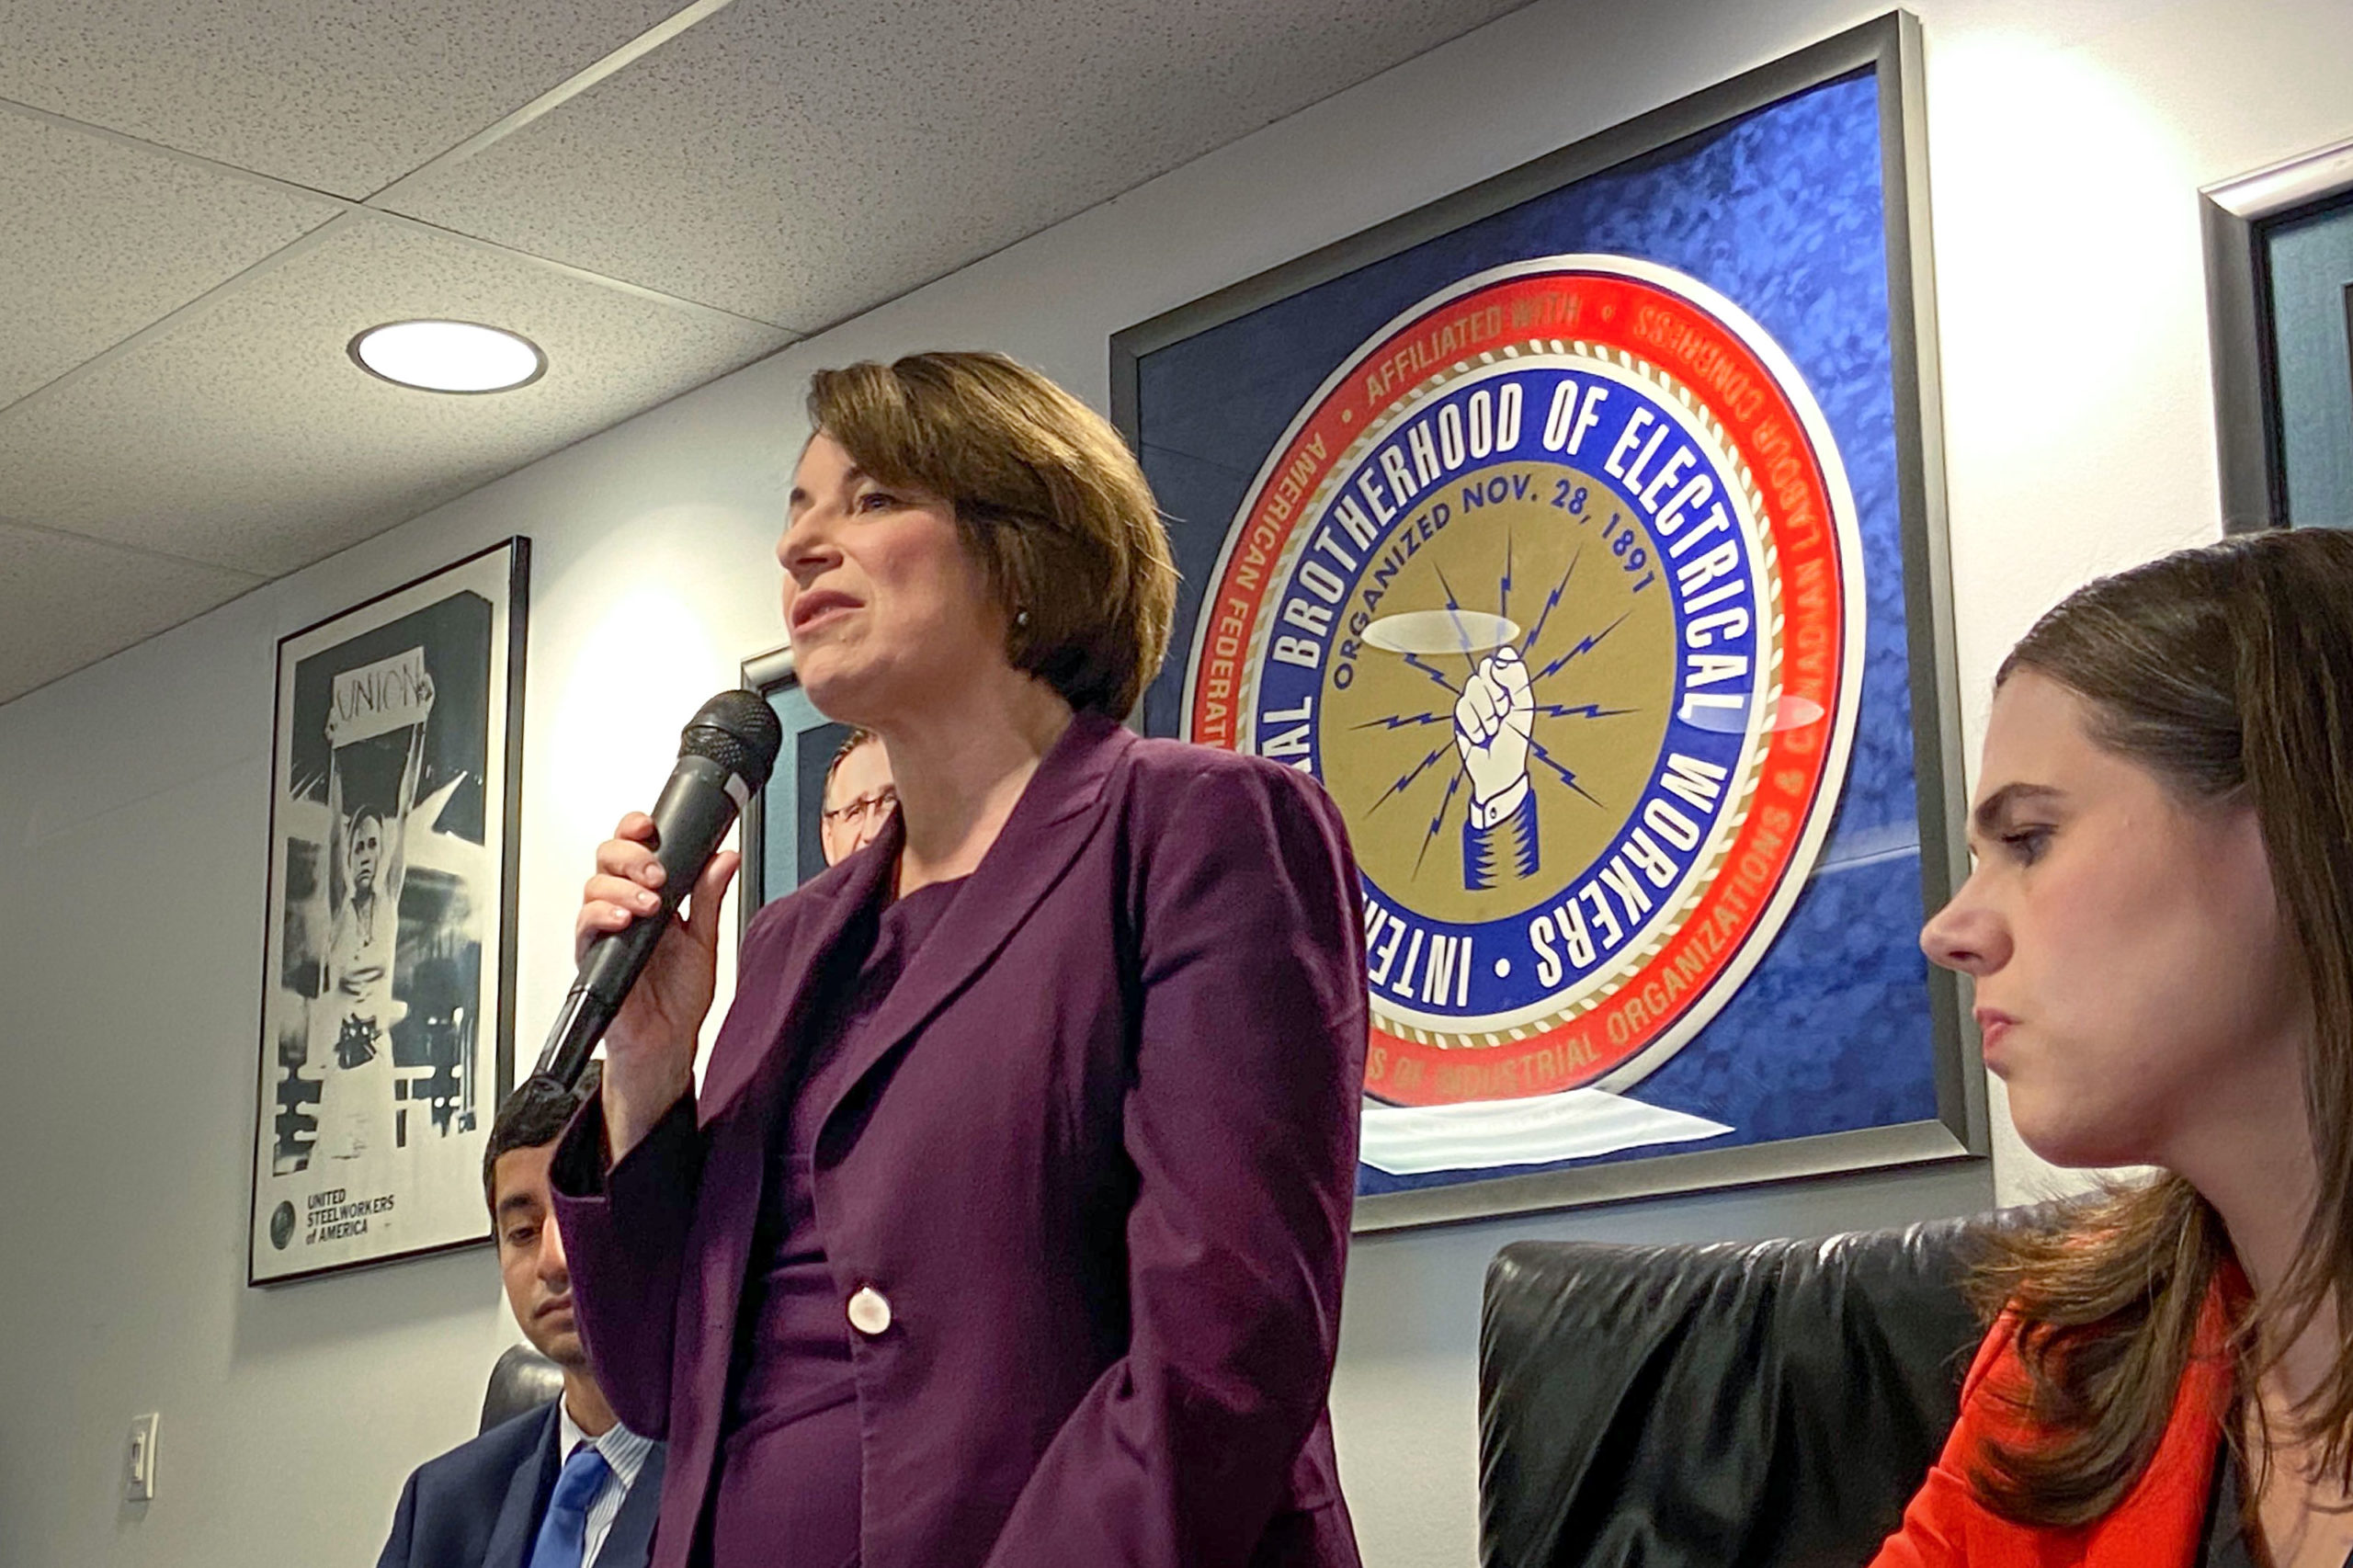 U.S. presidential candidate and Minnesota Sen. Amy Klobuchar speaks at a Denver town hall held at the International Brotherhood of Electrical Workers Local 111 lodge in Park Hill, Dec. 8, 2019. Colorado Secretary of State Jena Griswold is to her left.